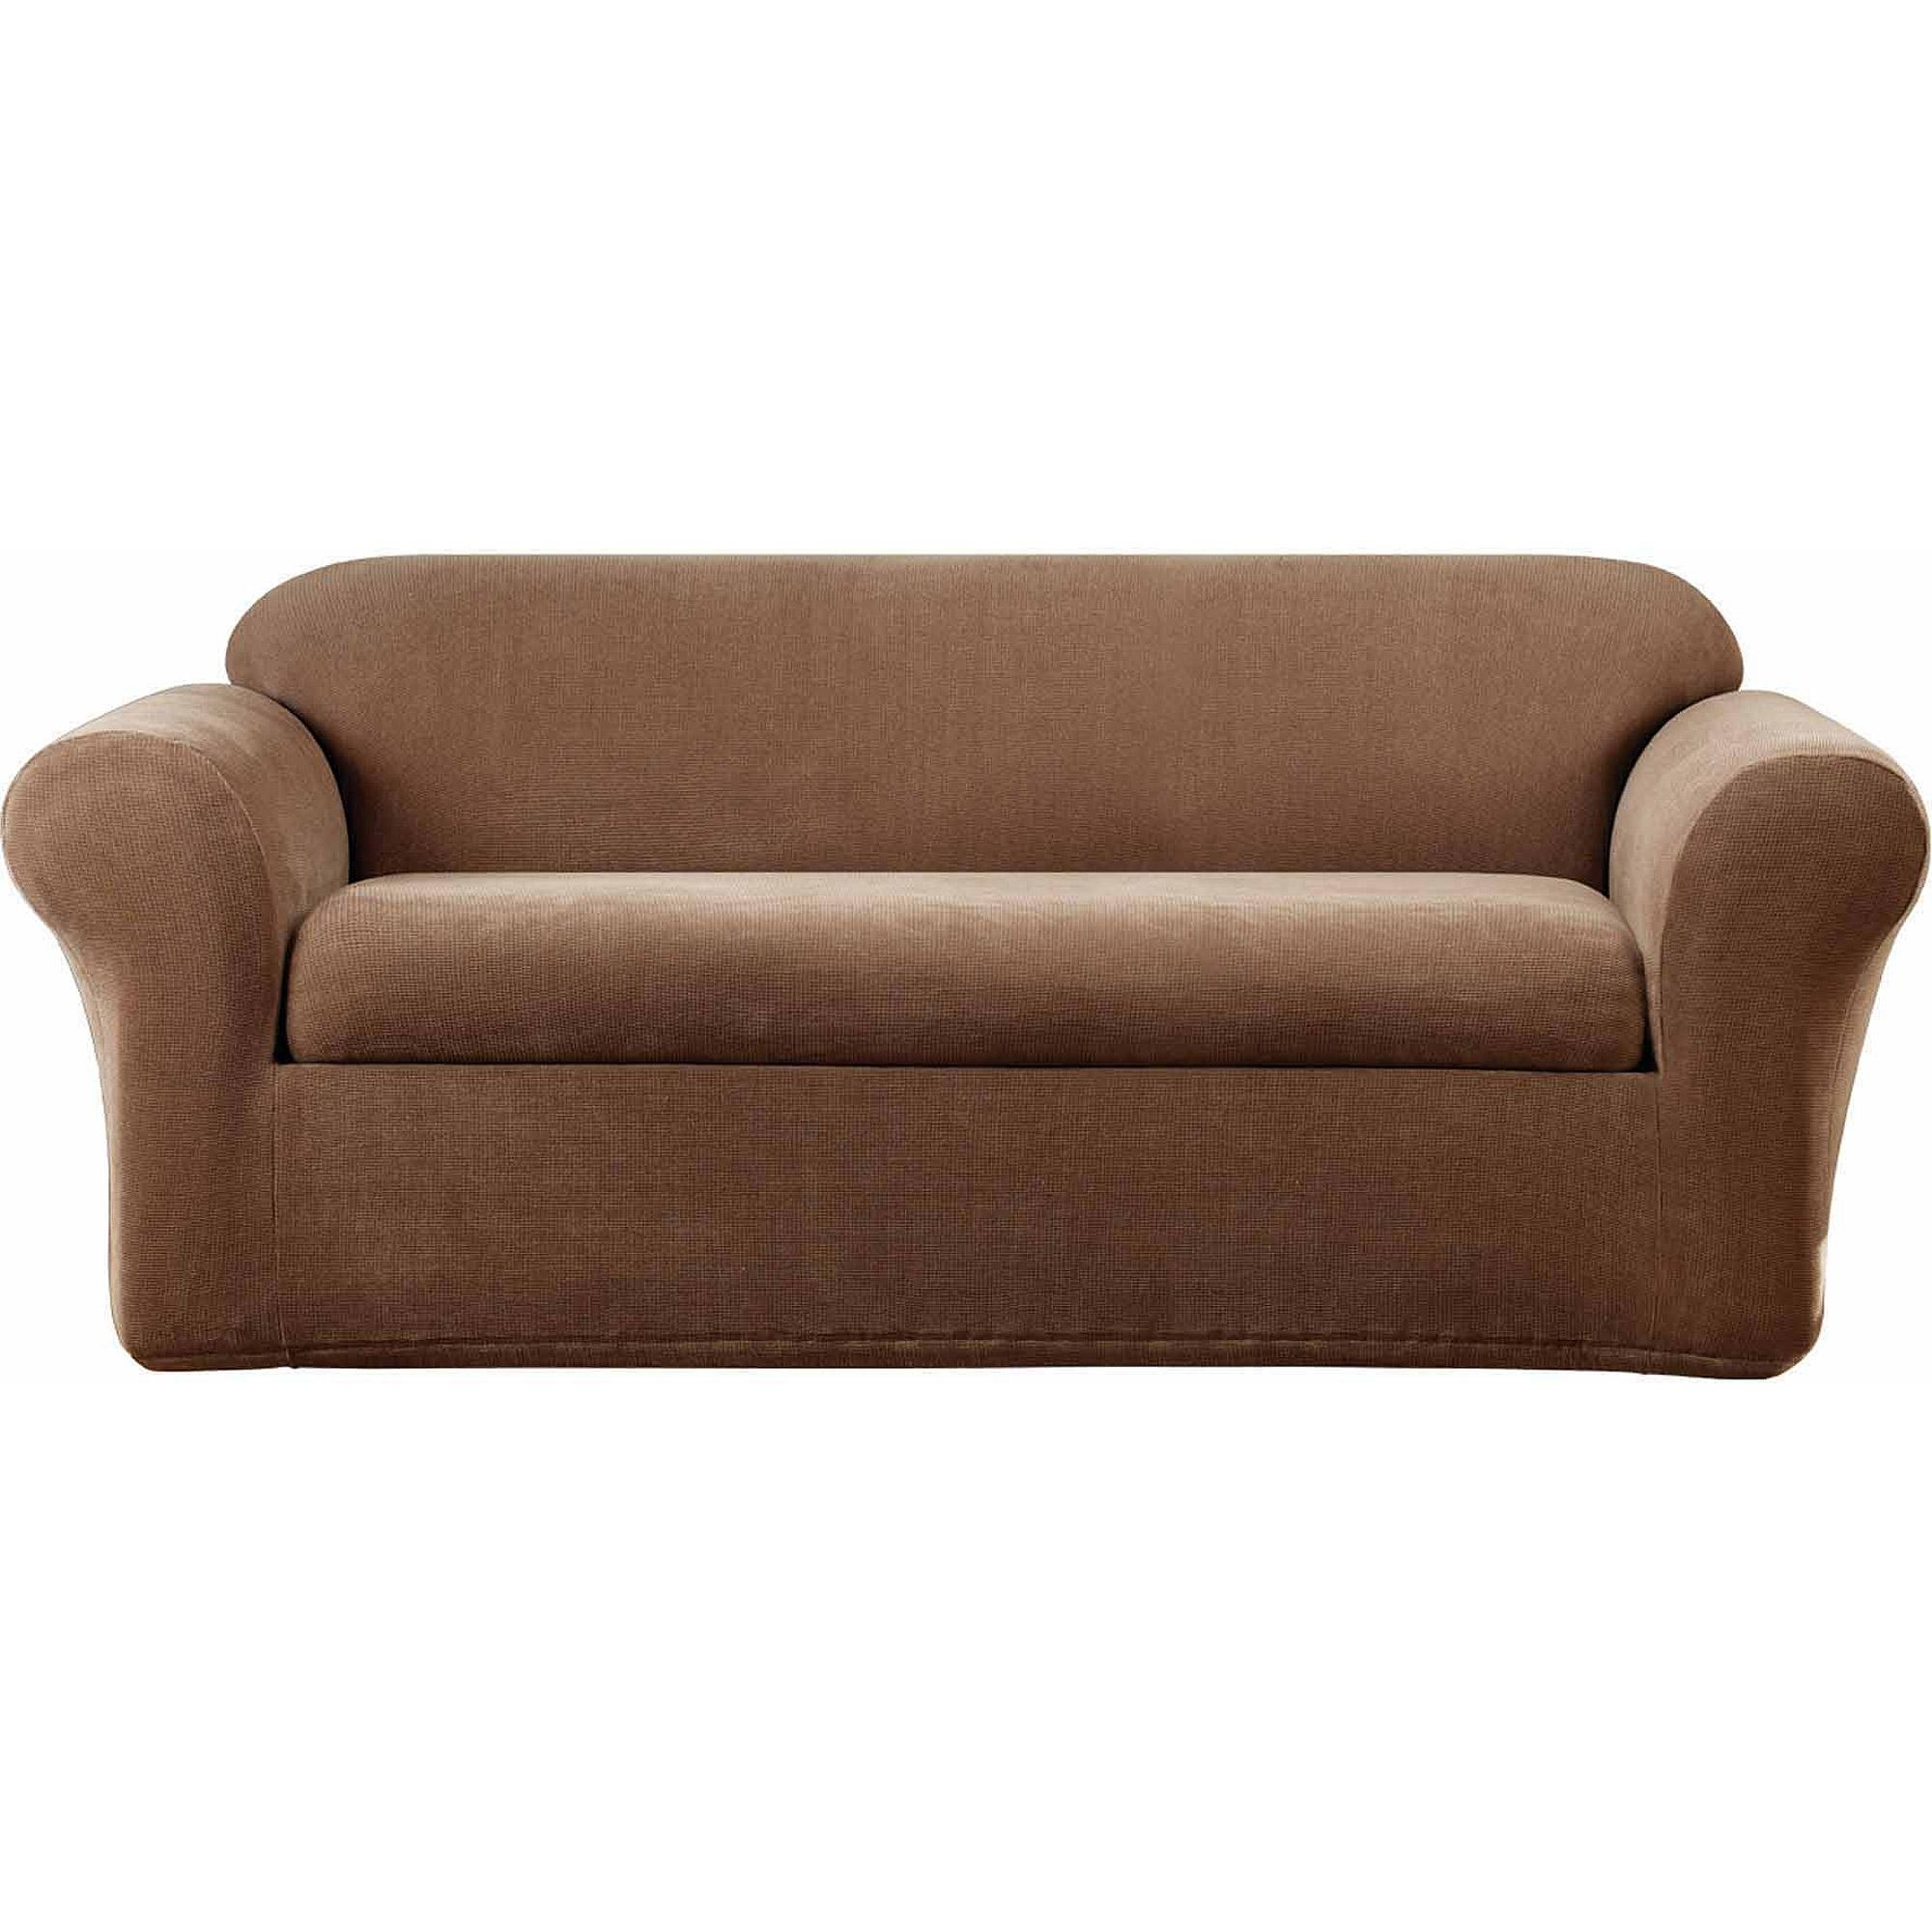 Sure Fit Soft Suede Sofa Cover – Walmart With Regard To Suede Slipcovers For Sofas (View 9 of 20)